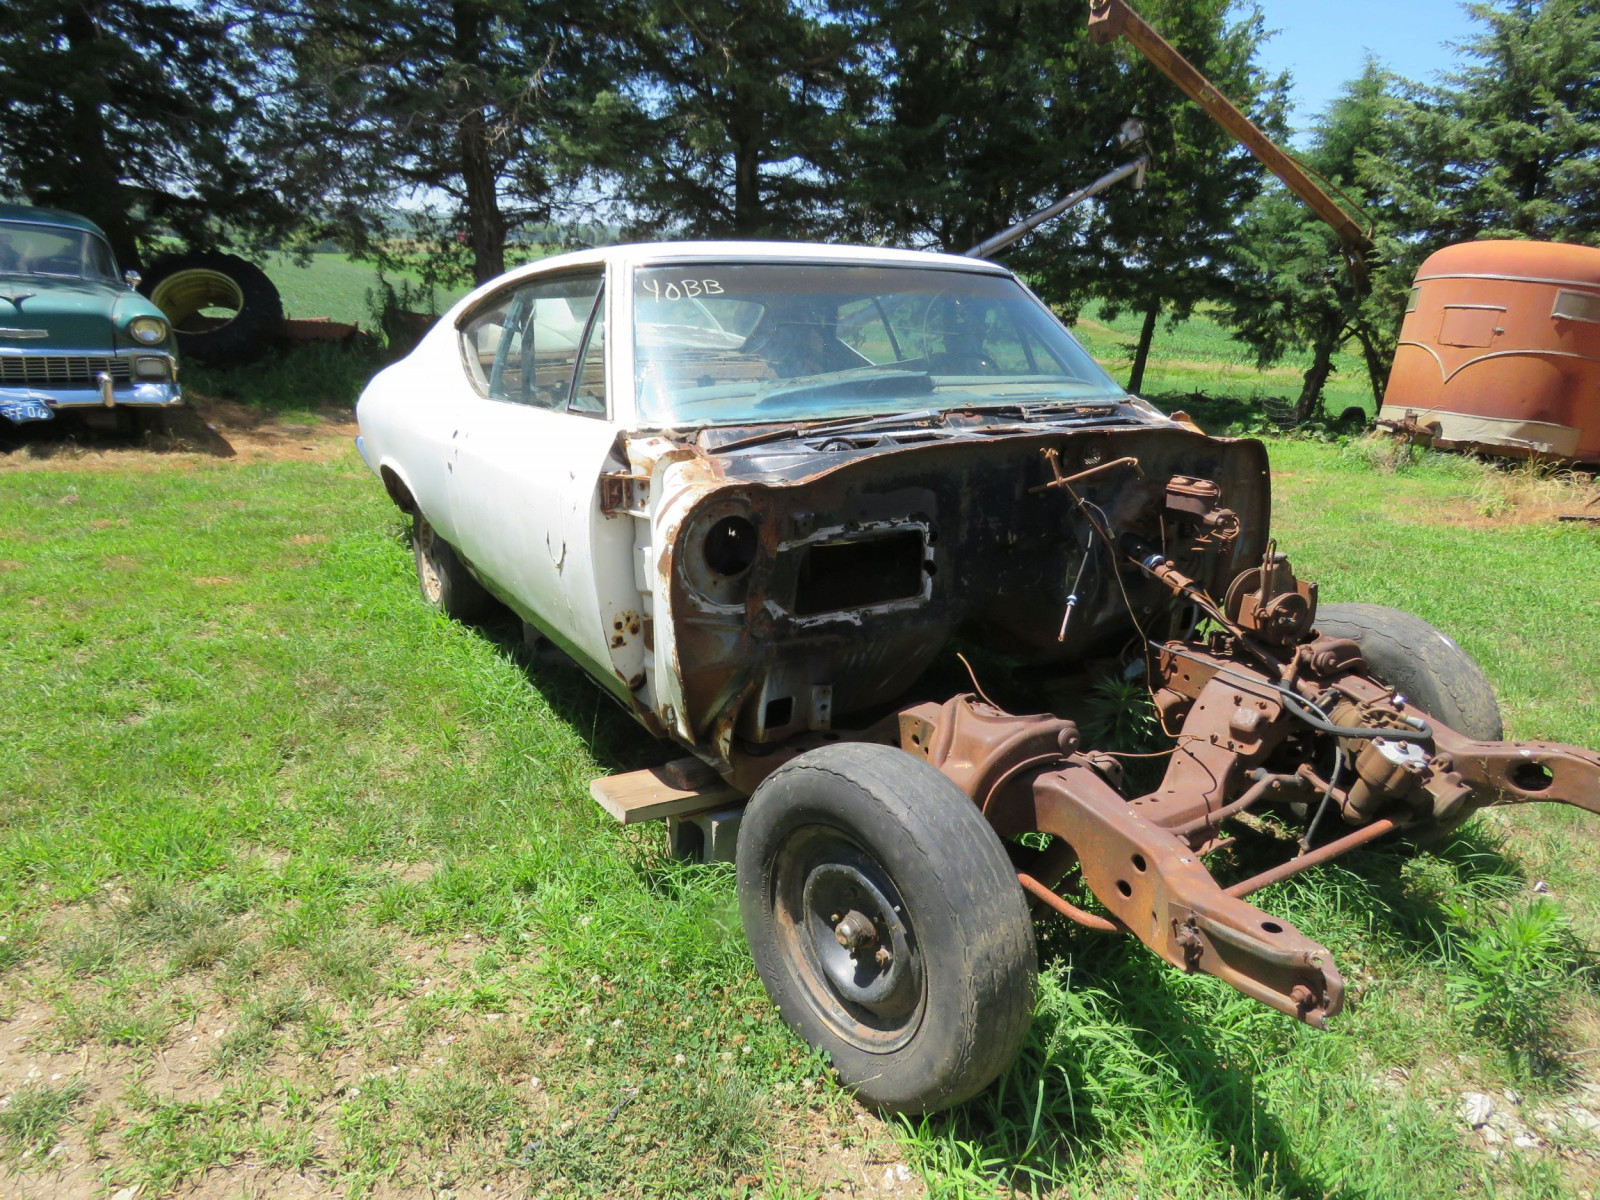 1968 Chevrolet Chevelle 2dr HT Project or Parts - Image 1